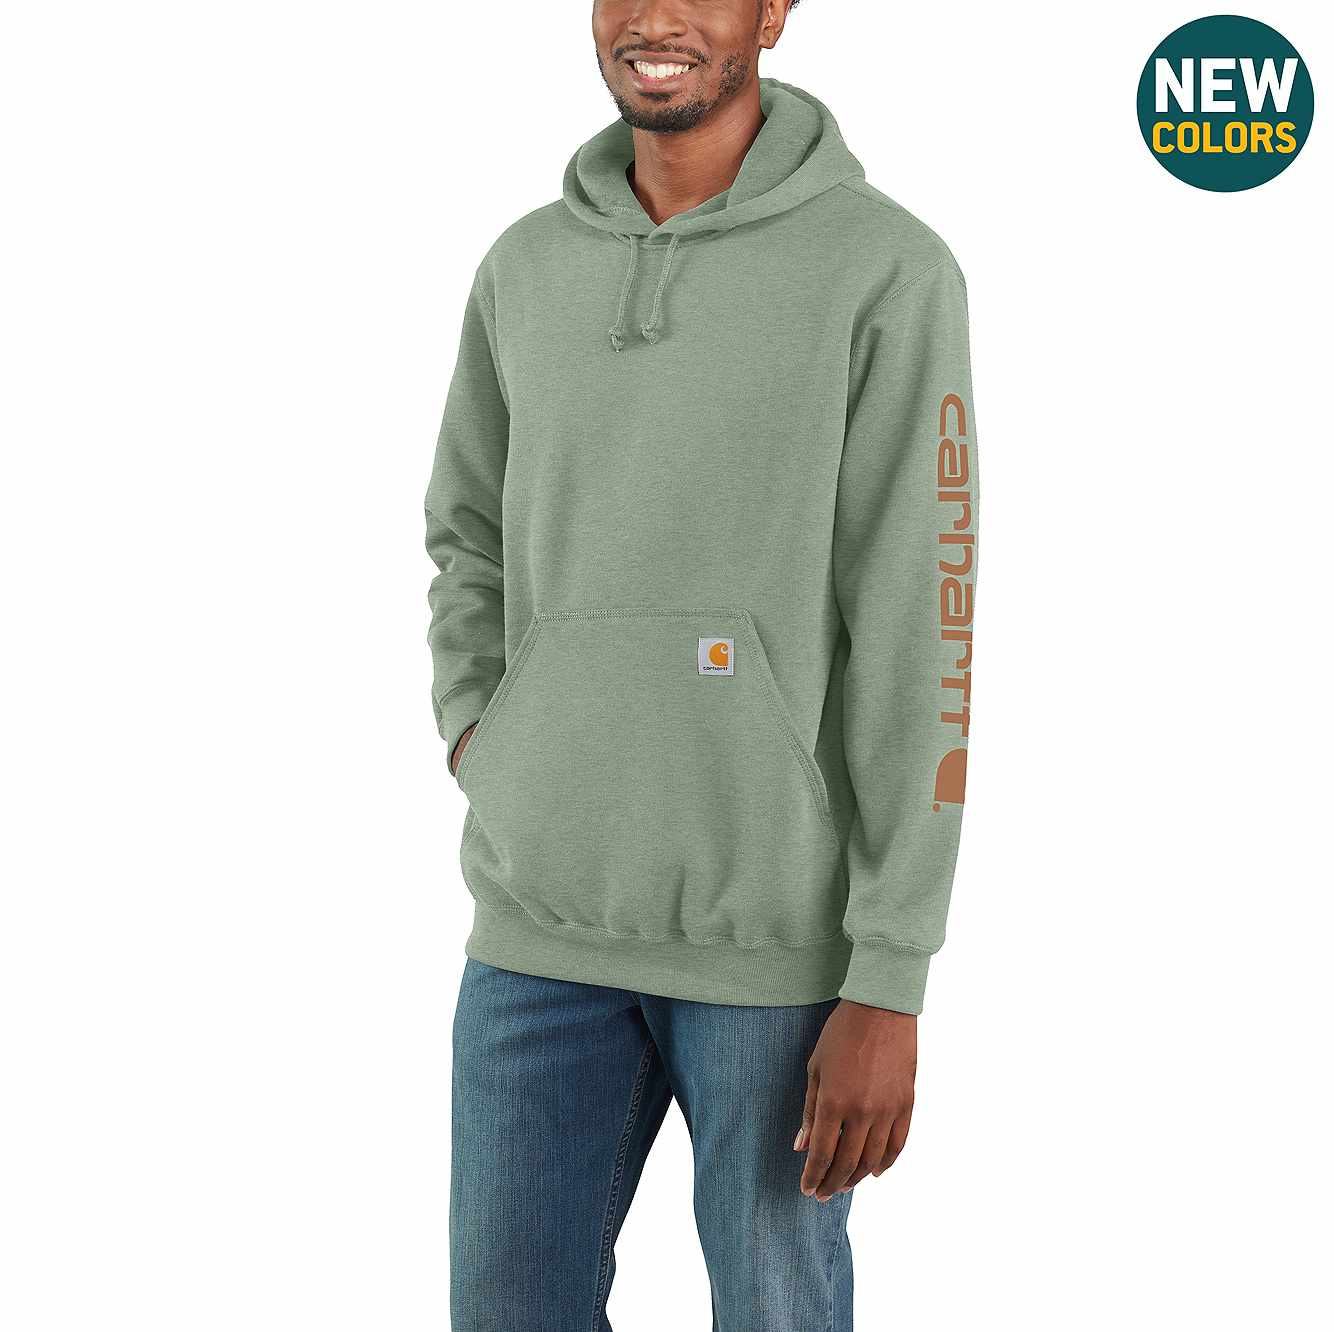 Picture of Midweight Hooded Logo Sweatshirt in Leaf Green Heather